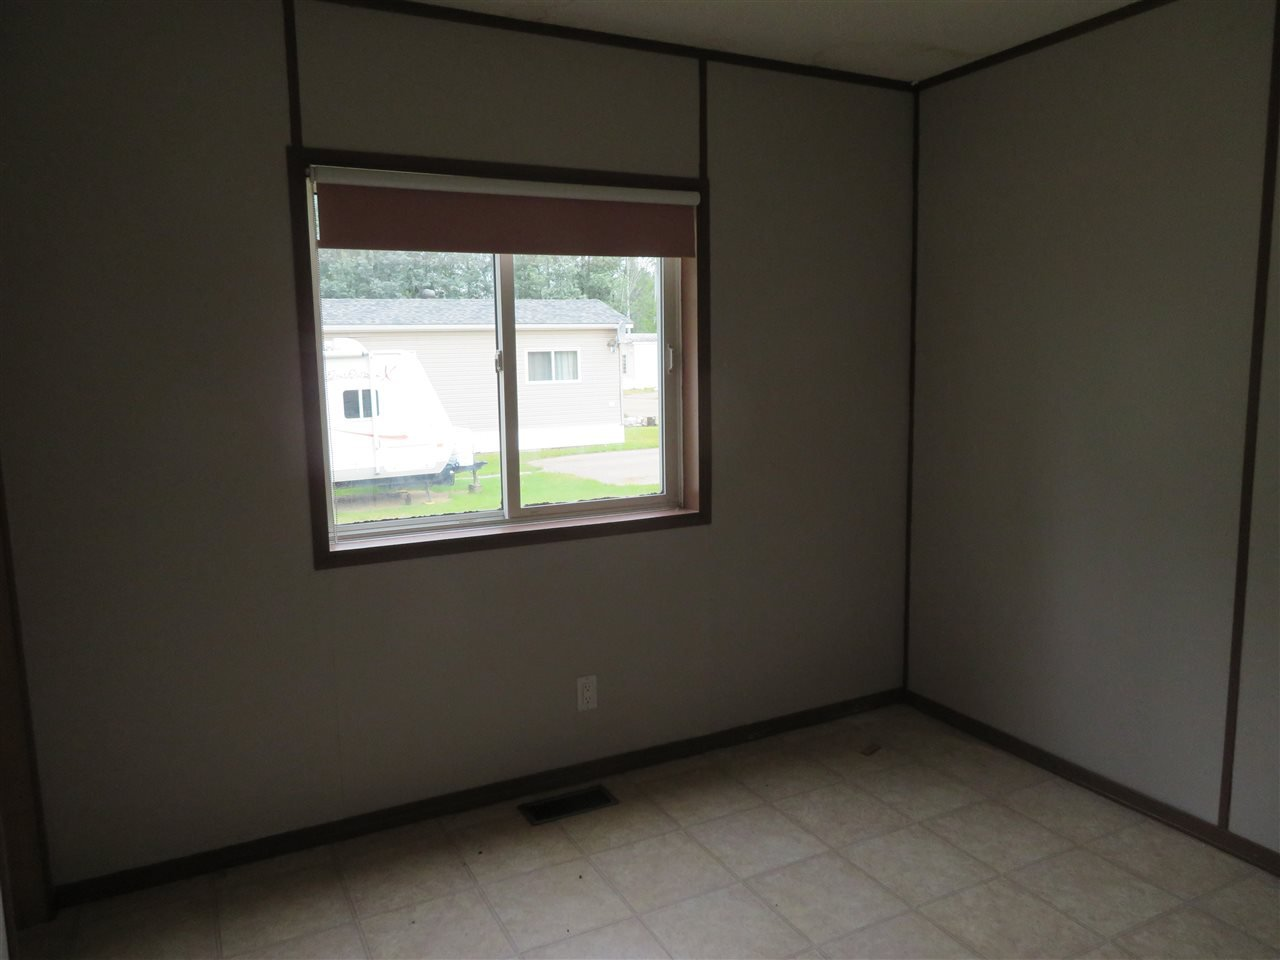 """Photo 7: Photos: 31 2963 KLAHANNI Drive in Fort Nelson: Fort Nelson -Town Manufactured Home for sale in """"KLAHANNI PARK"""" (Fort Nelson (Zone 64))  : MLS®# R2377854"""